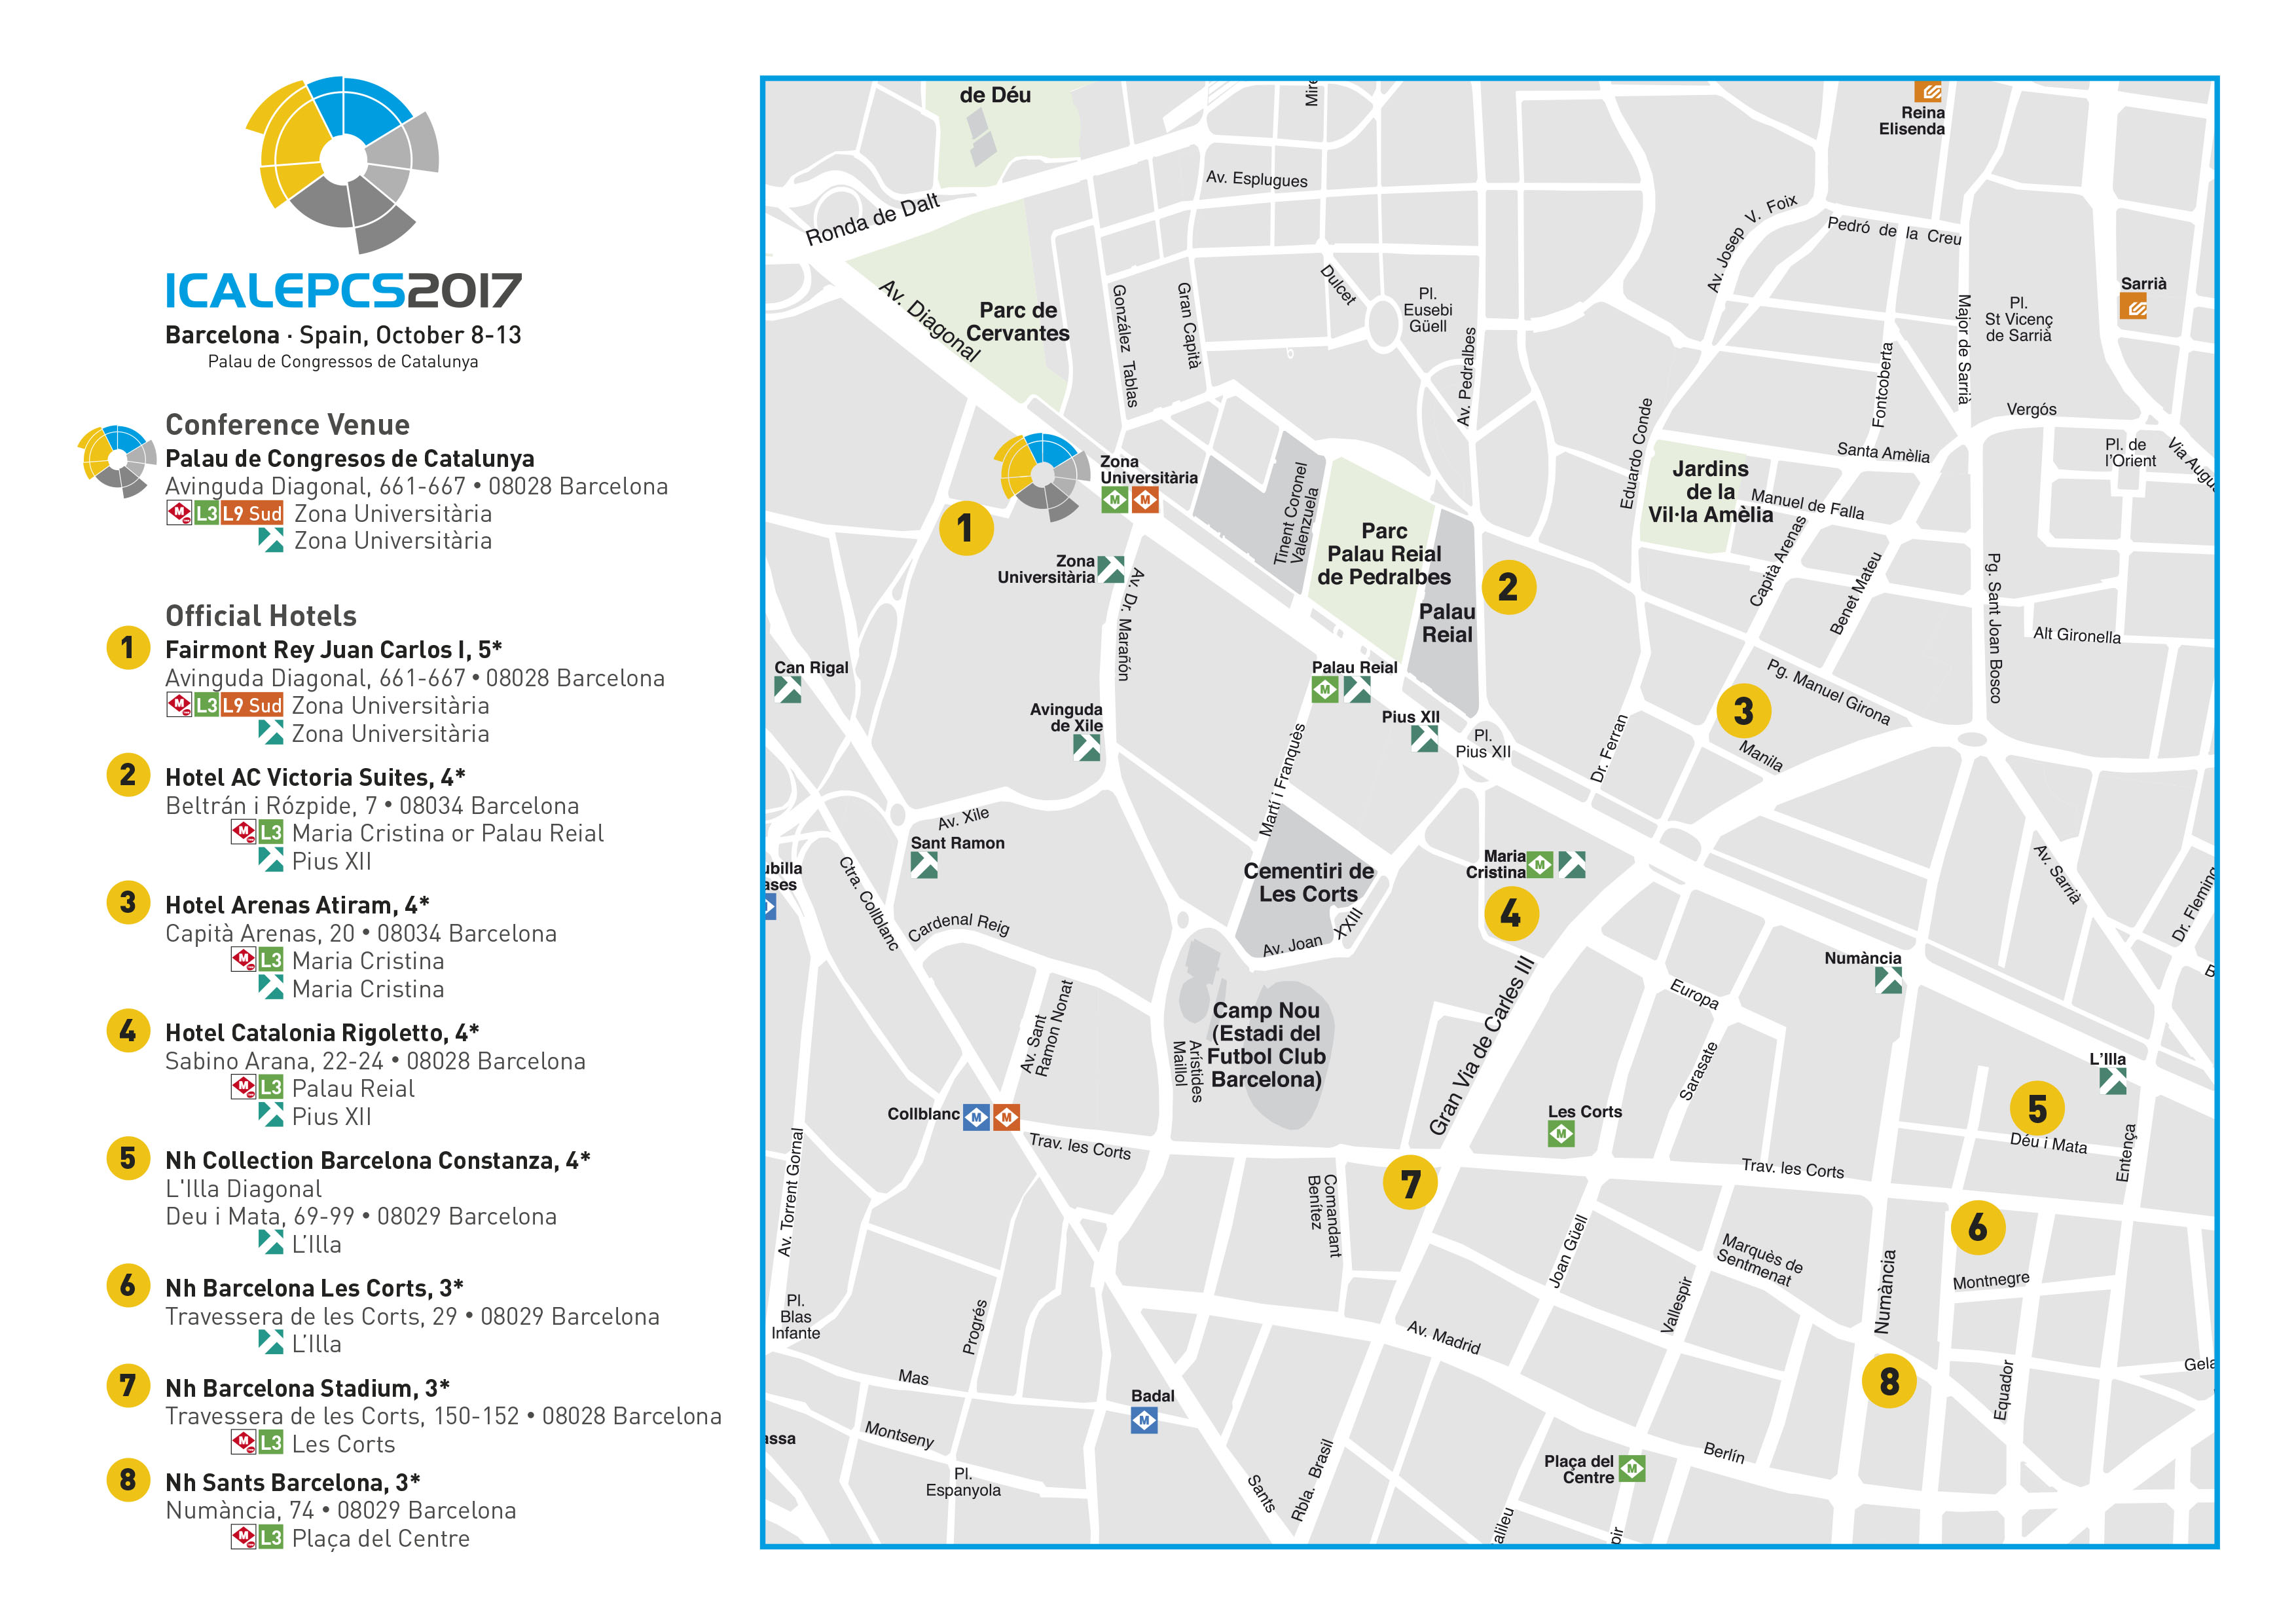 ICALEPCS 2017 Hotels city map